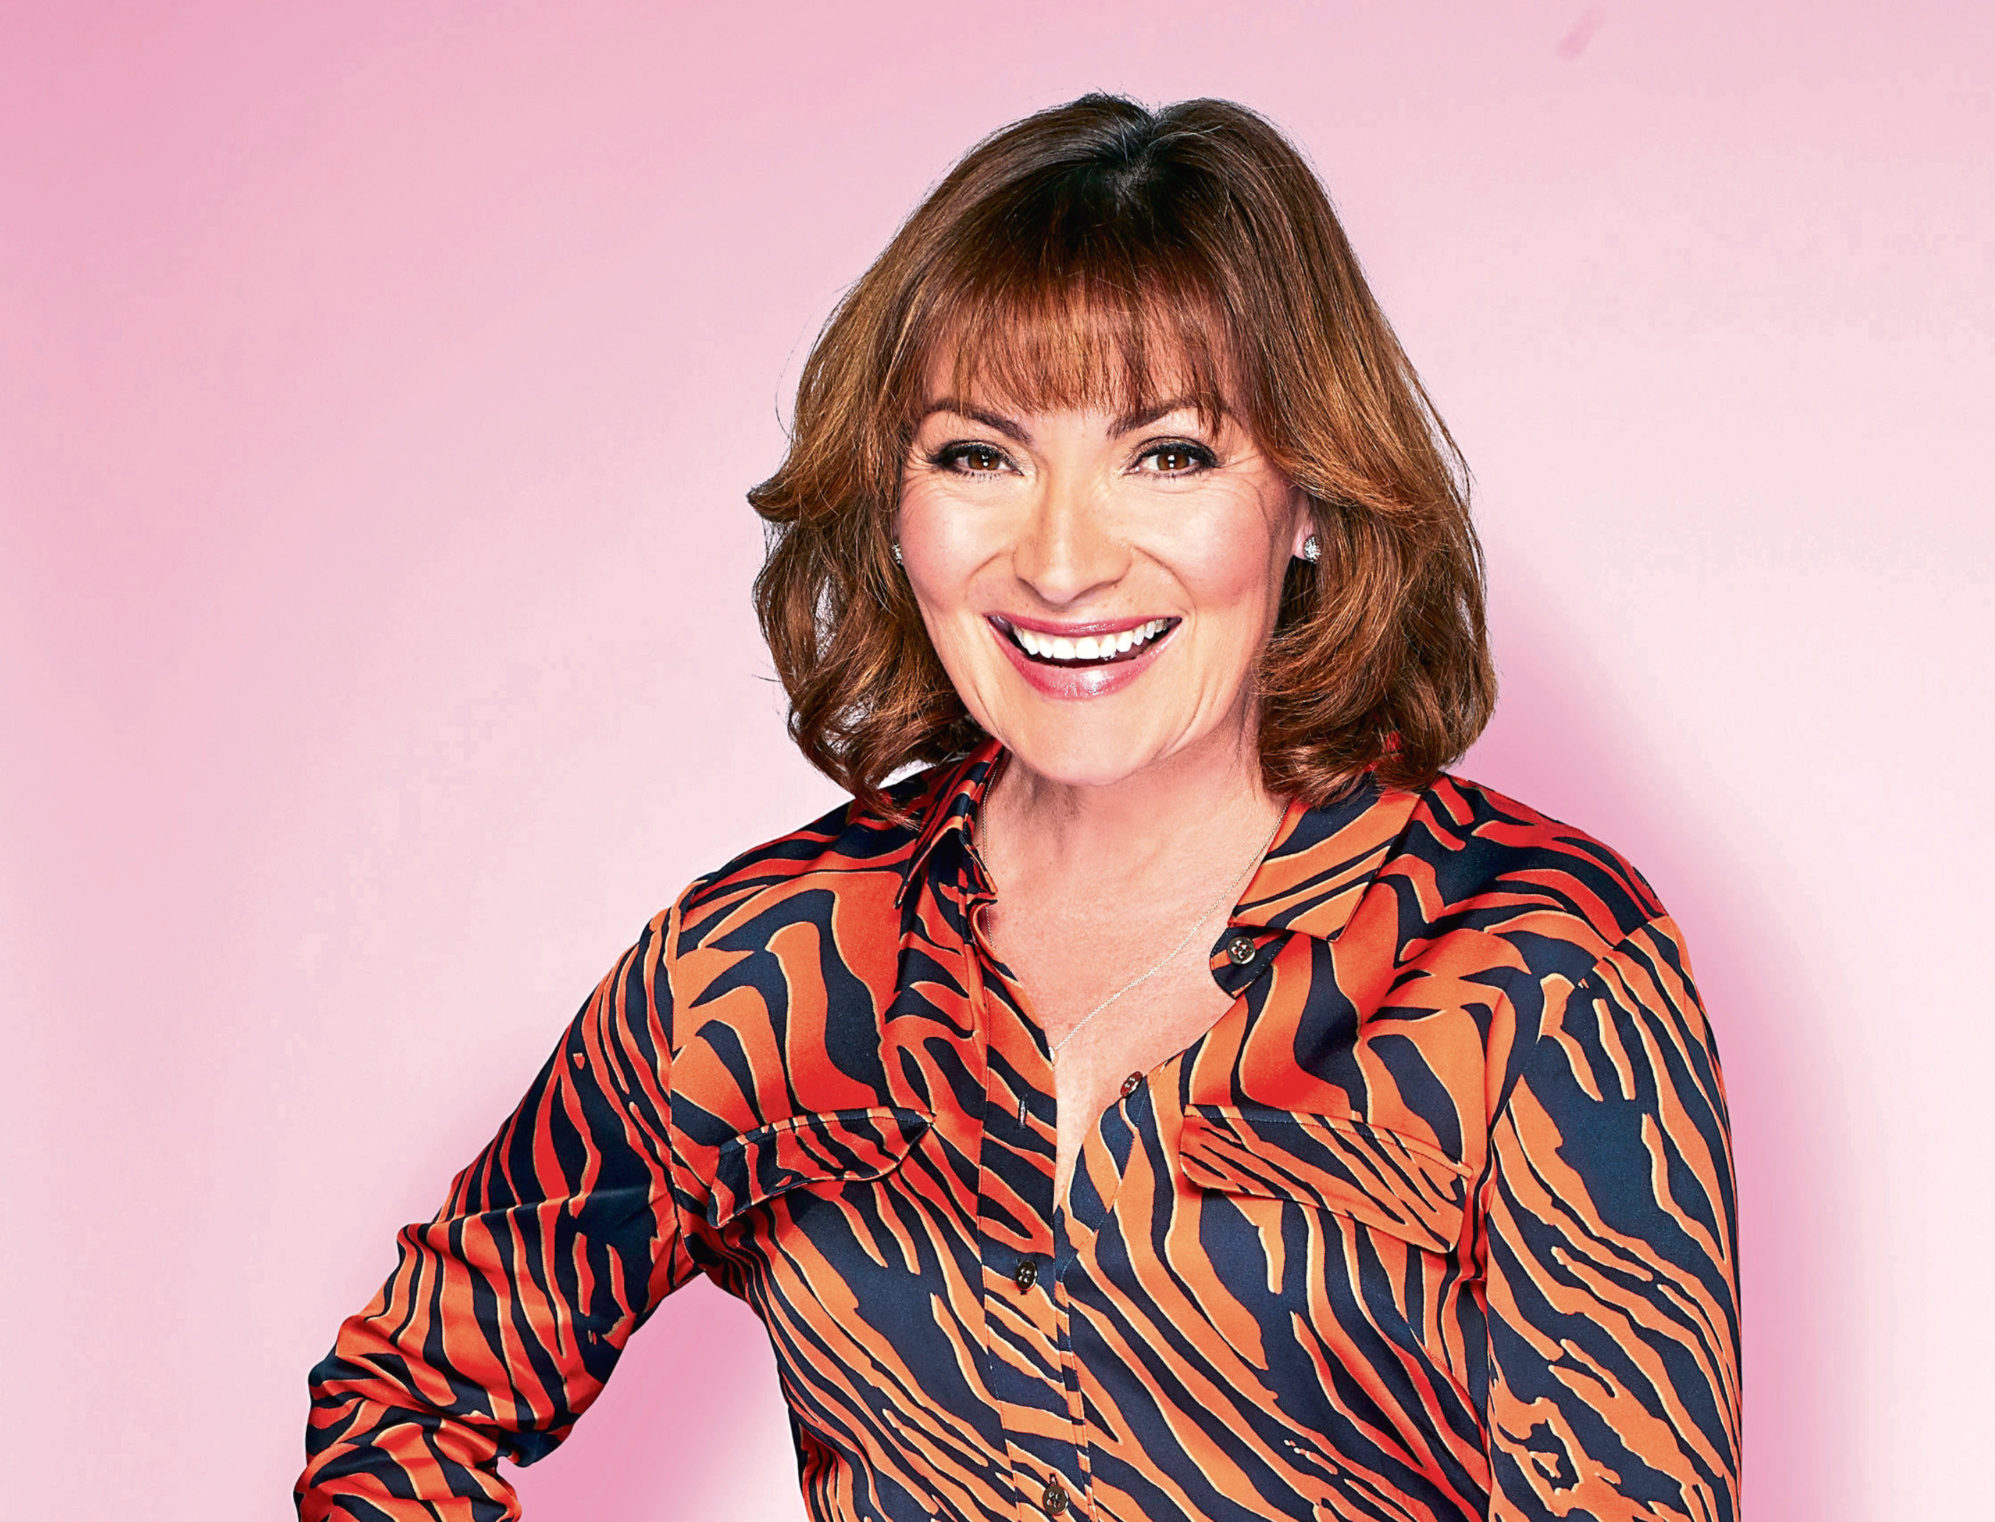 Scots presenter Lorraine Kelly will back HIV Scotland's new campaign to end the transmission of the disease by 2030.